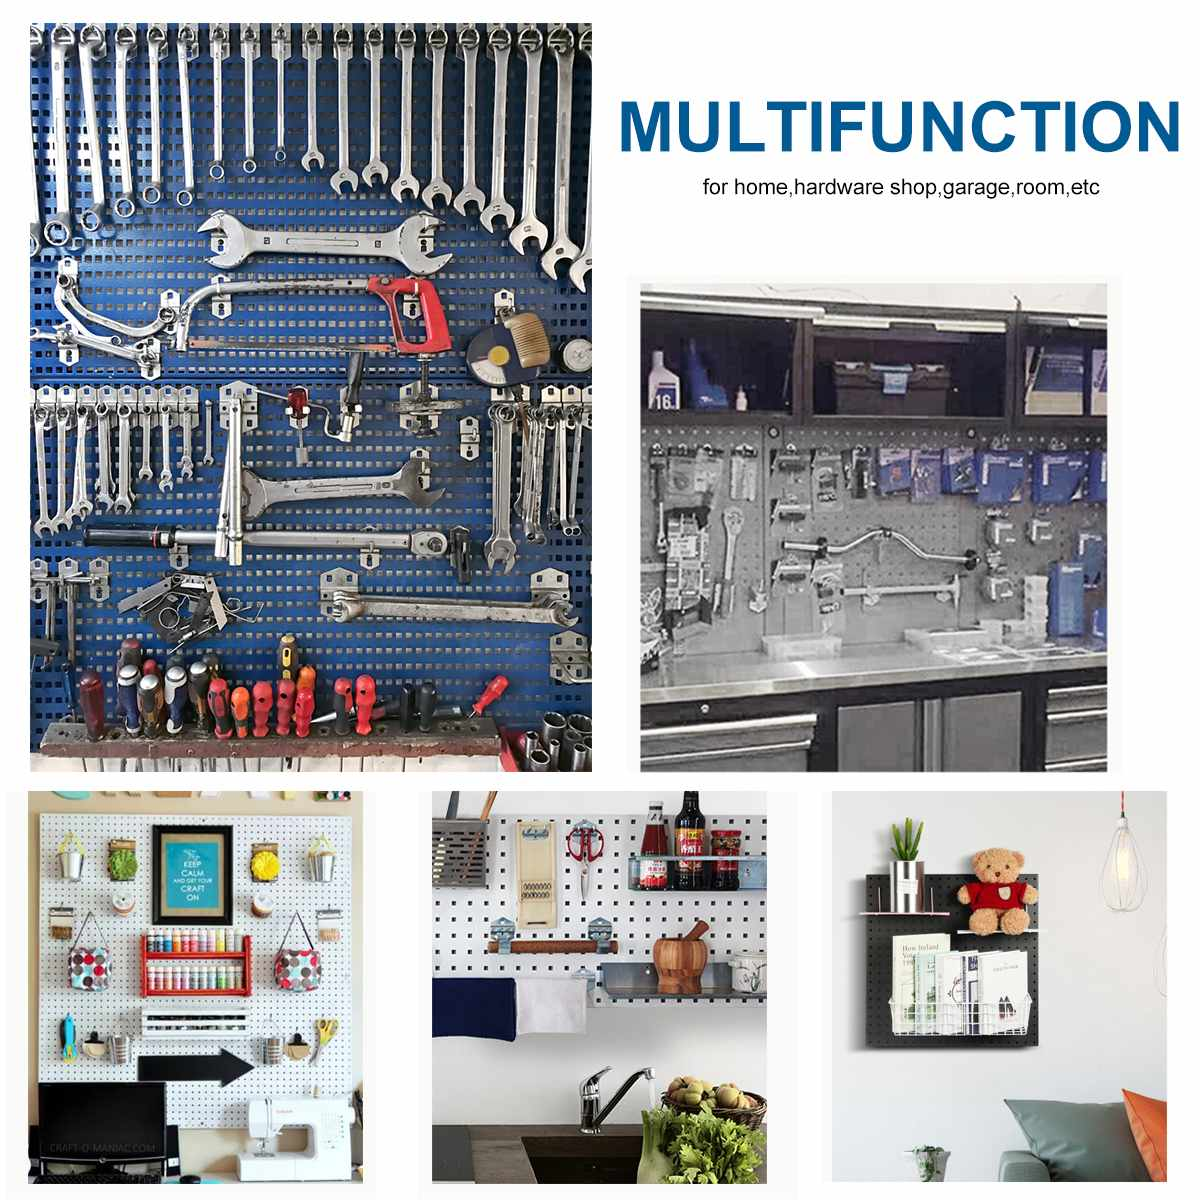 For Heavy And Multifunction Small Hanging Board Board Mounted Steel Wall Organizer Parts Panels Tool Tool  Duty Pegboard Storage